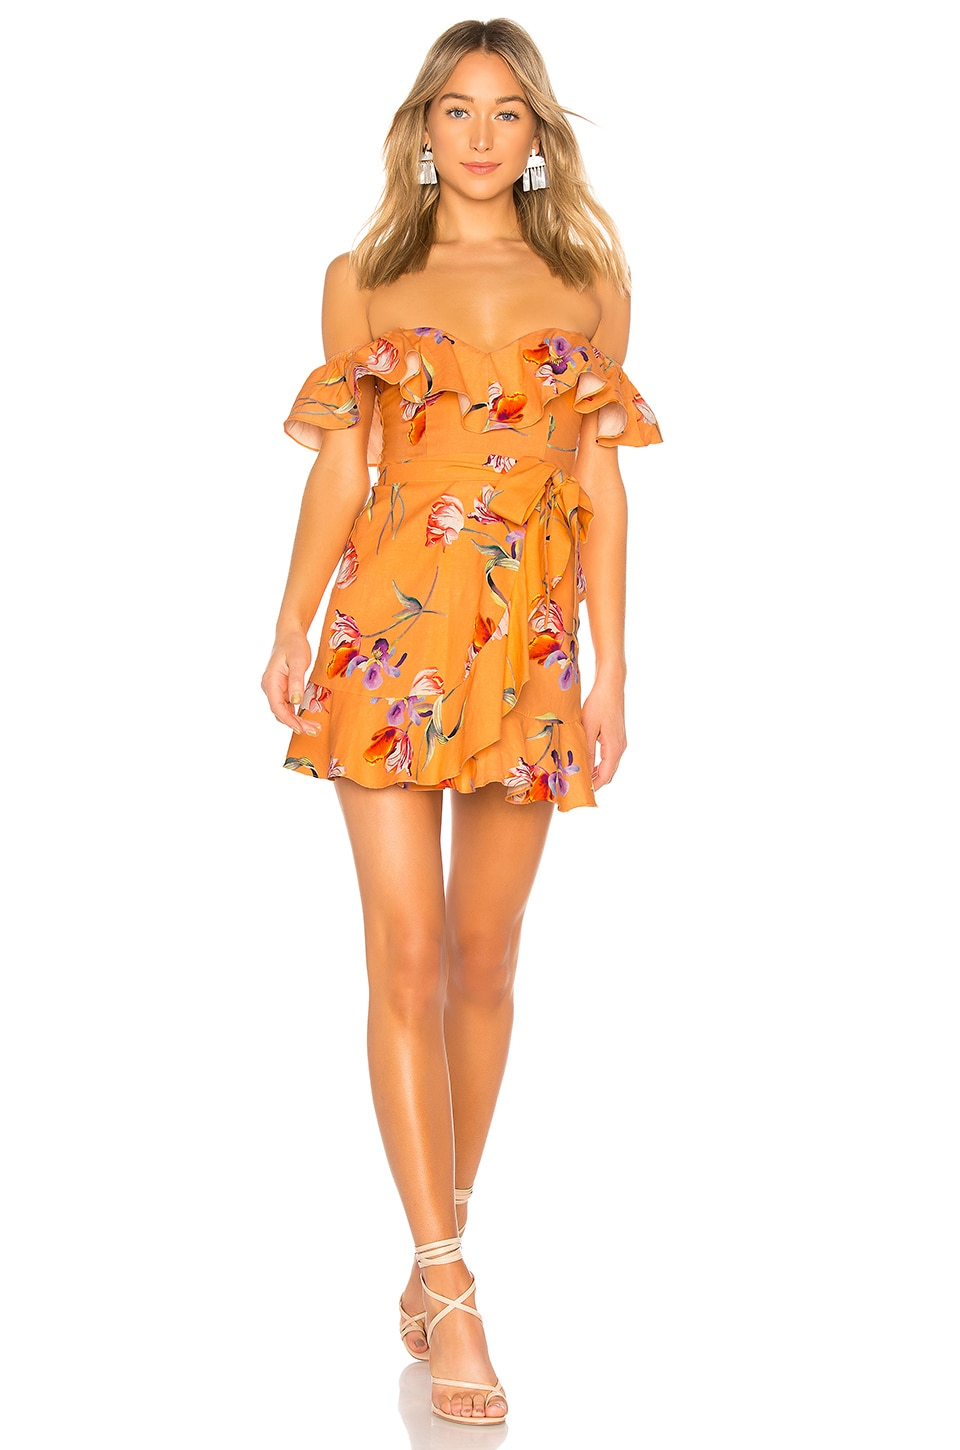 Privacy Please Bellview Mini Dress in Orange Cassie Floral